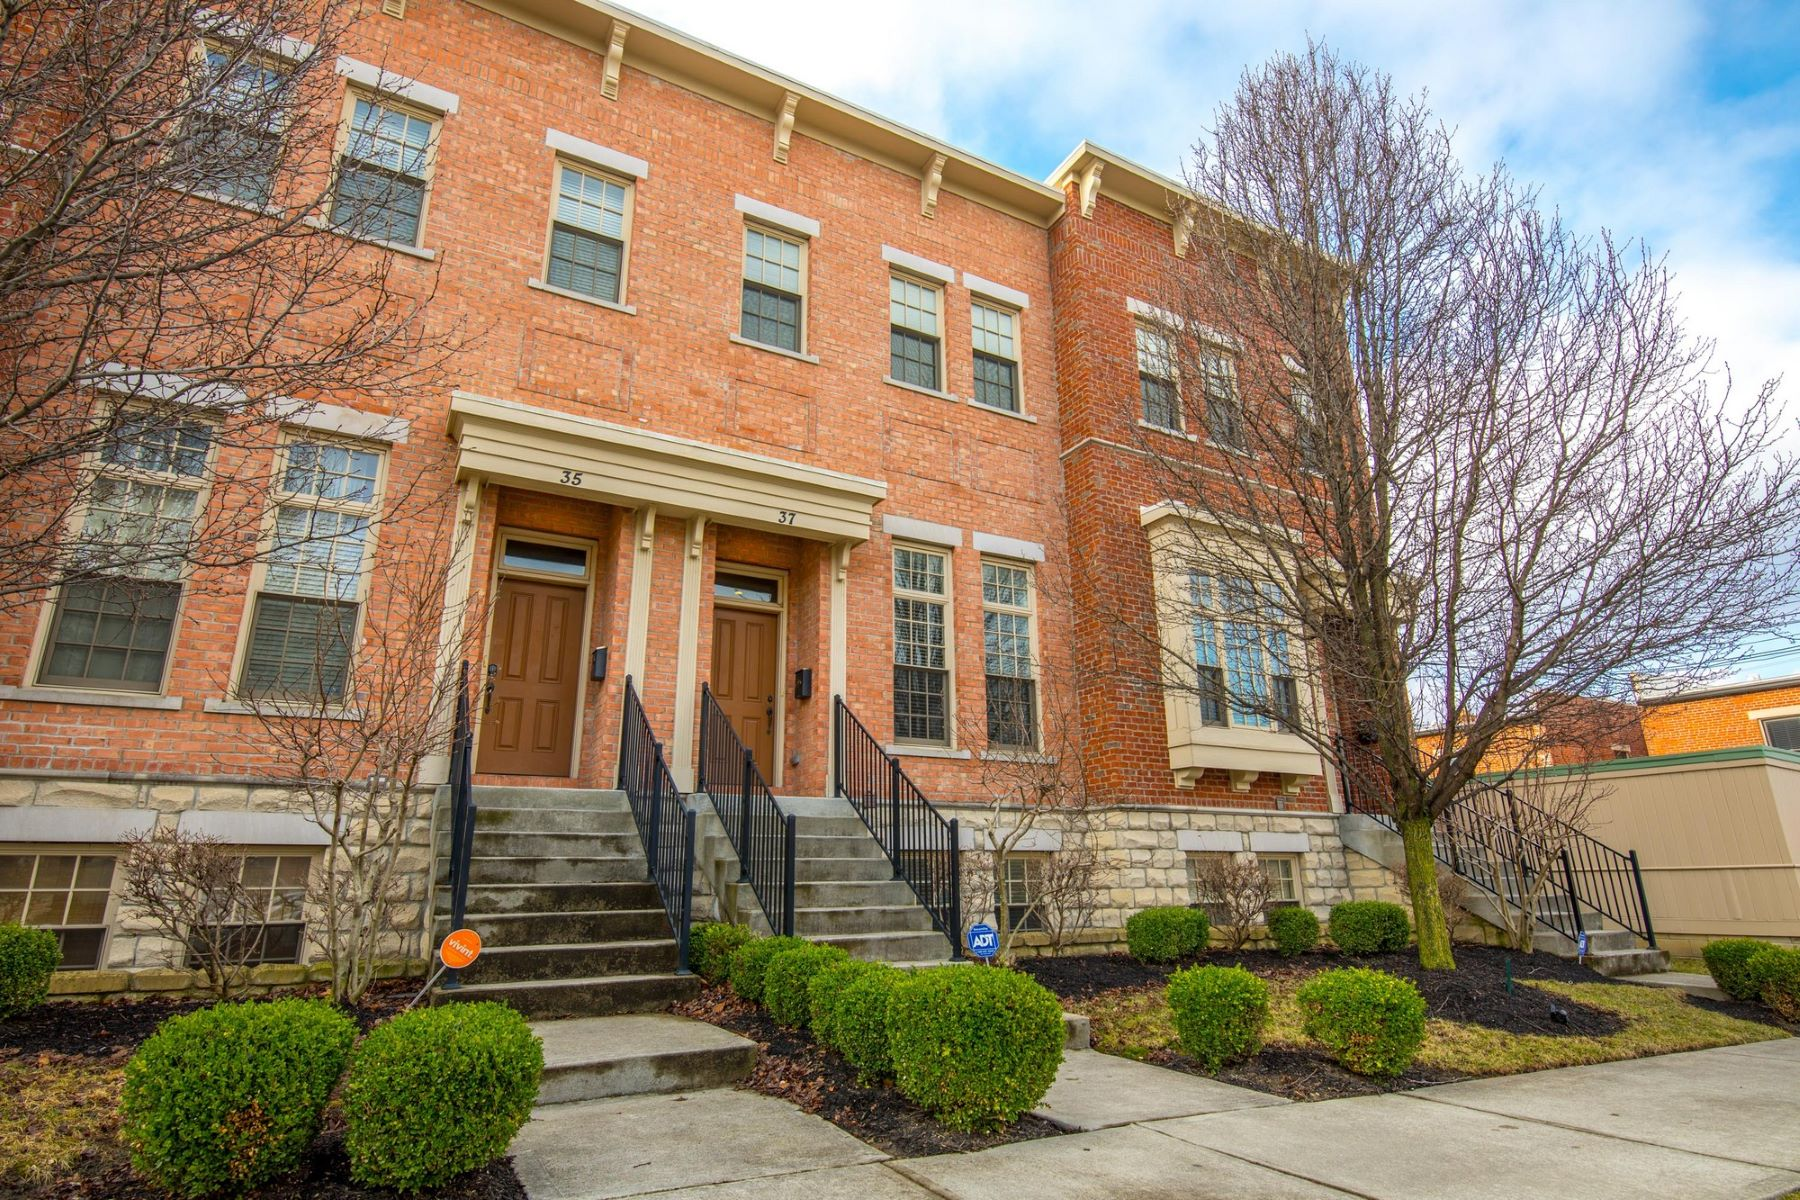 Single Family Homes for Sale at 37 West Frankfort Street Columbus, Ohio 43206 United States